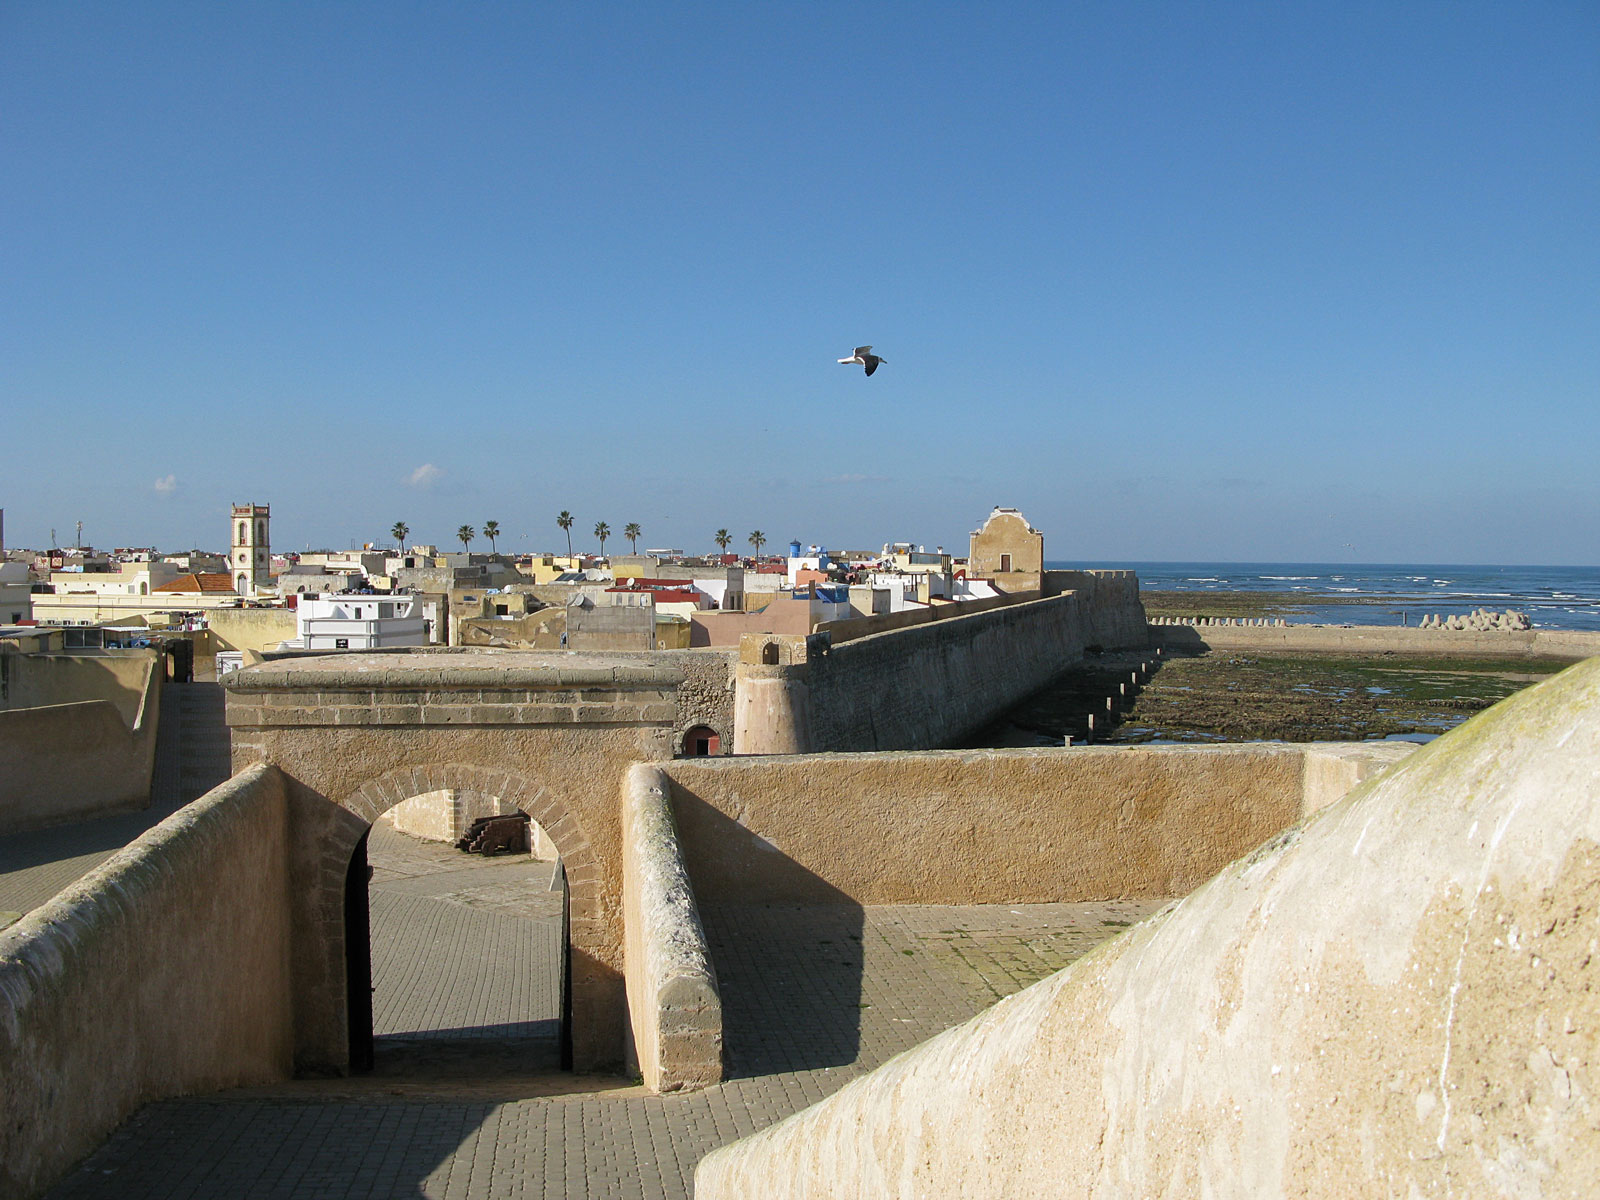 City of El Jadida in Morocco